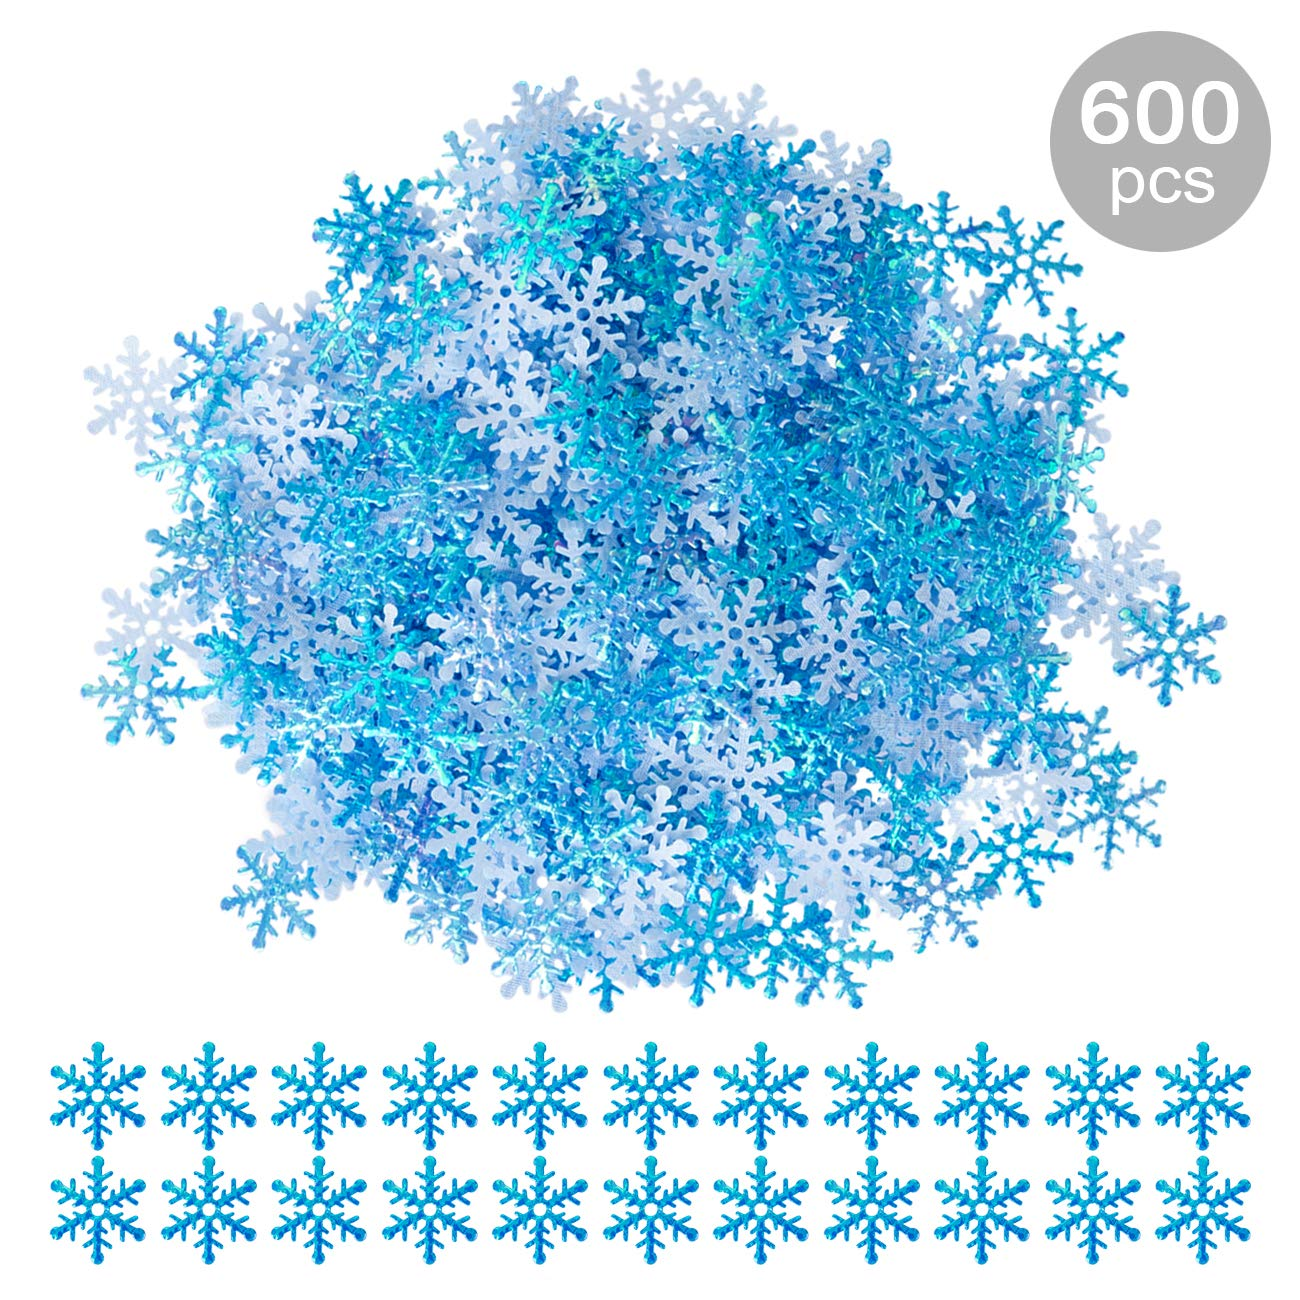 GWHOLE 600Pcs Snowflakes Confetti for Wedding Birthday Holiday Party Table Decorations Supplies